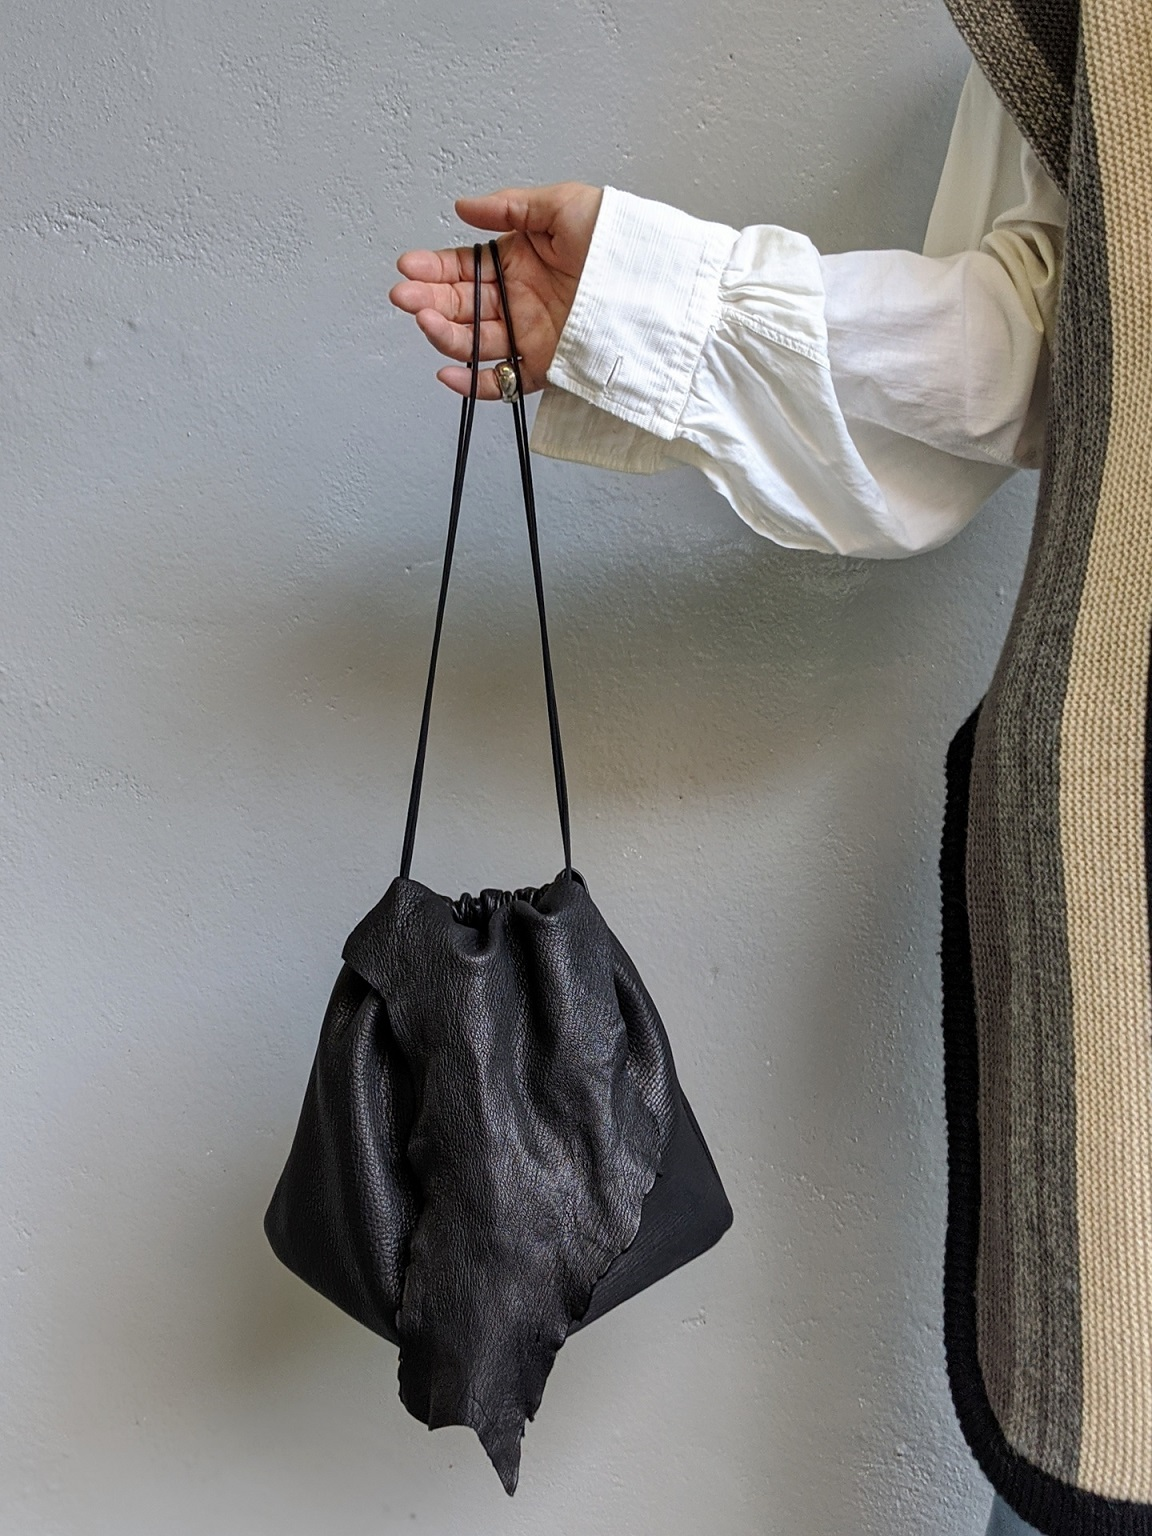 【再入荷】Deer Skin Bag - Black